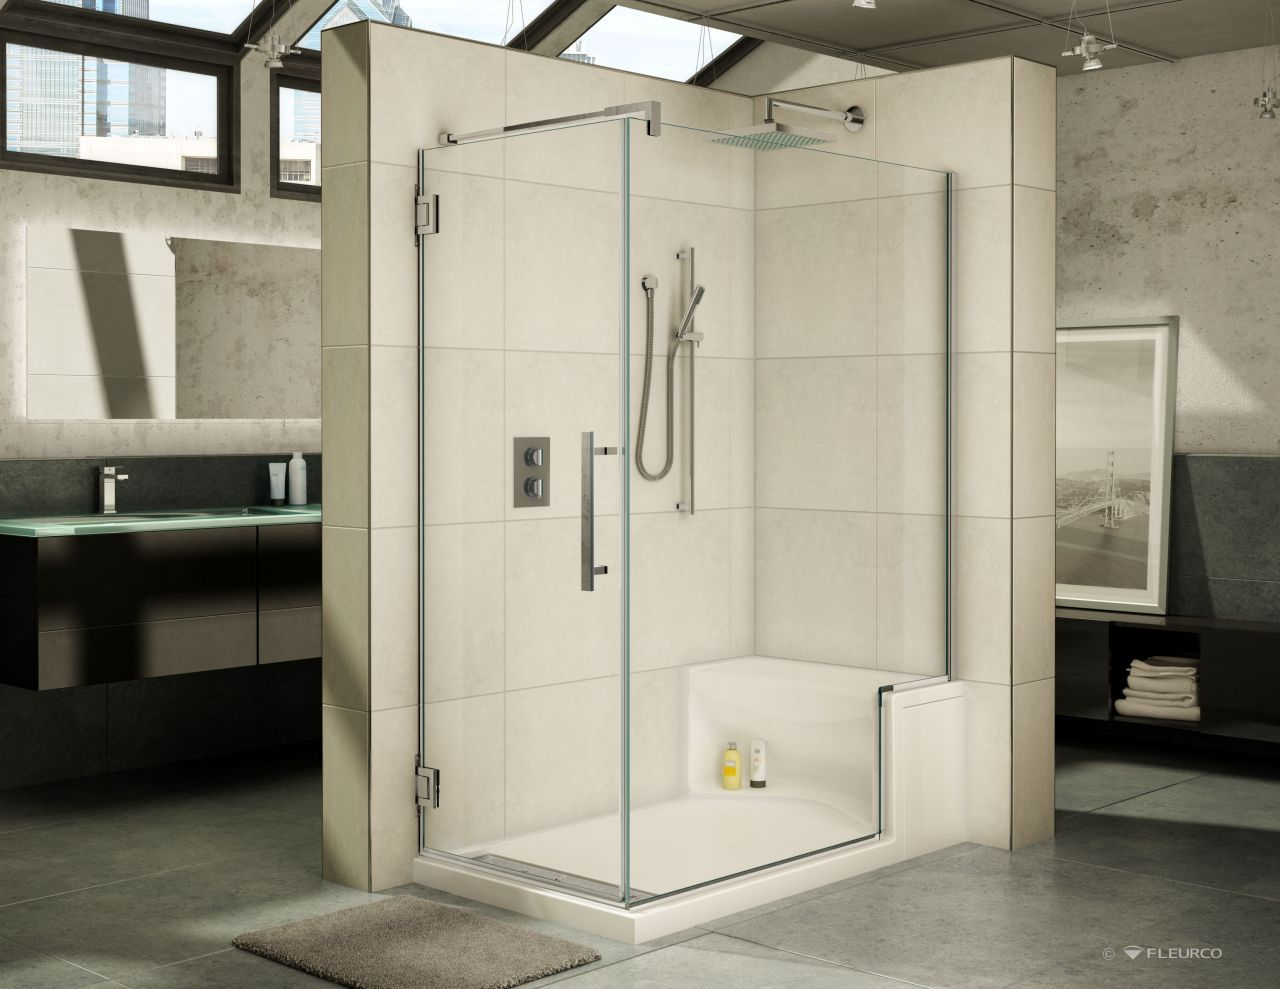 Introducing a Luxury Acrylic Shower Base Line with an Innovative ...